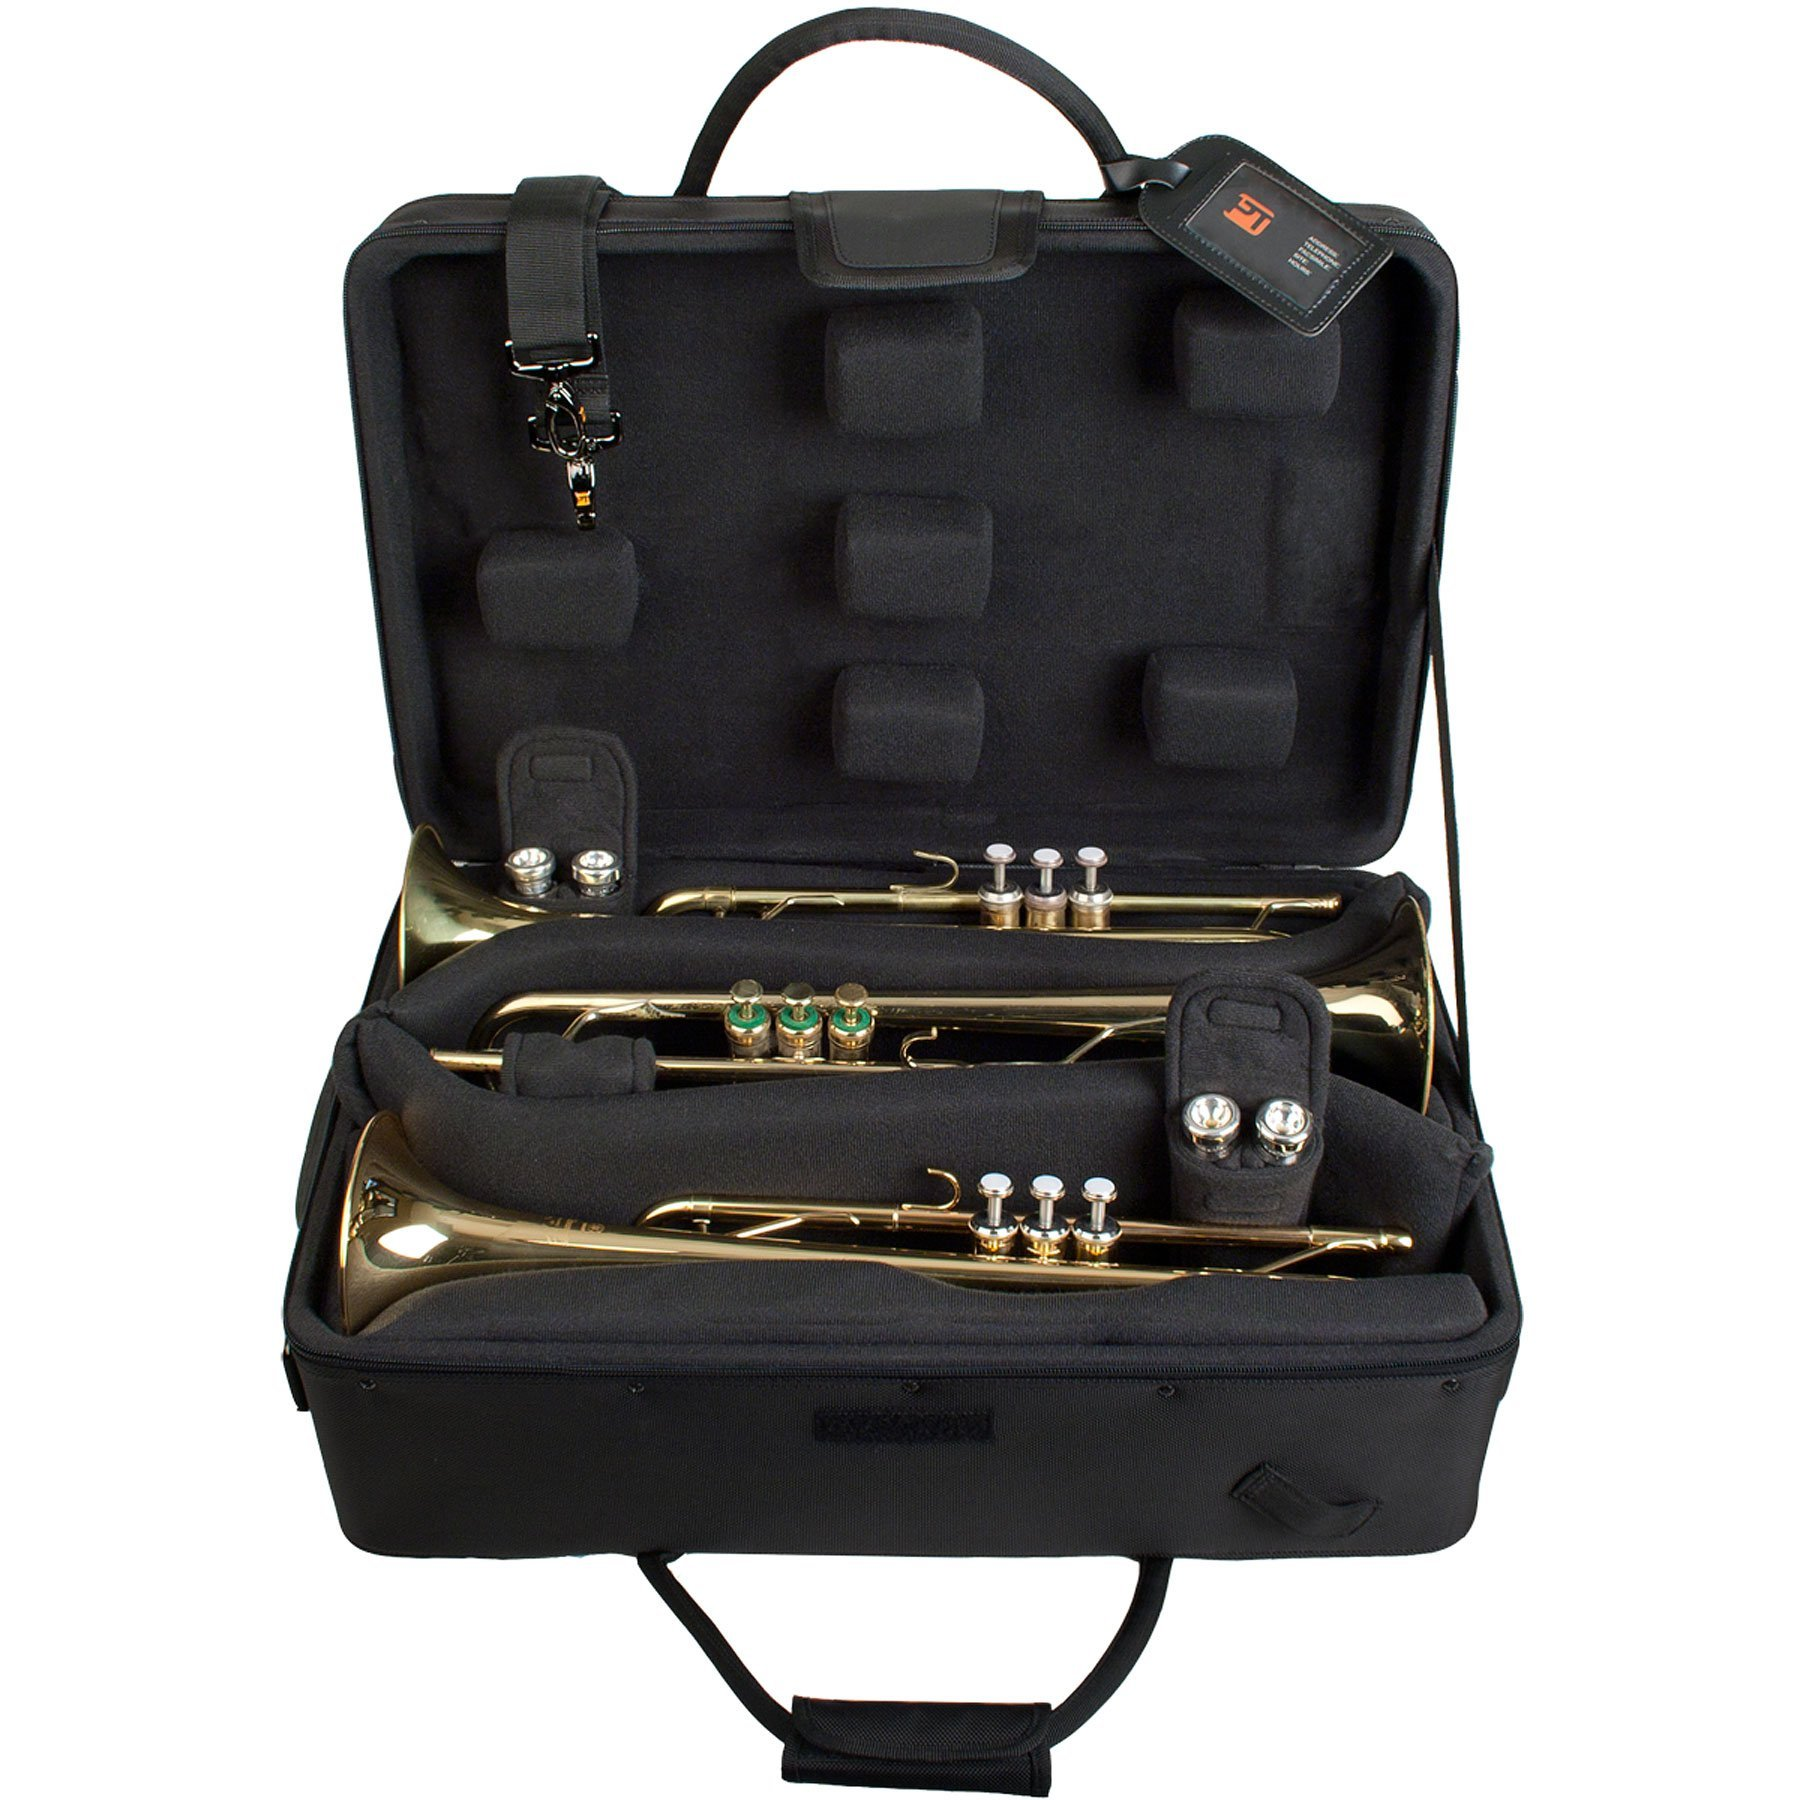 Protec IPAC TRIPLE TRUMPET CASE by ProTec (Image #2)